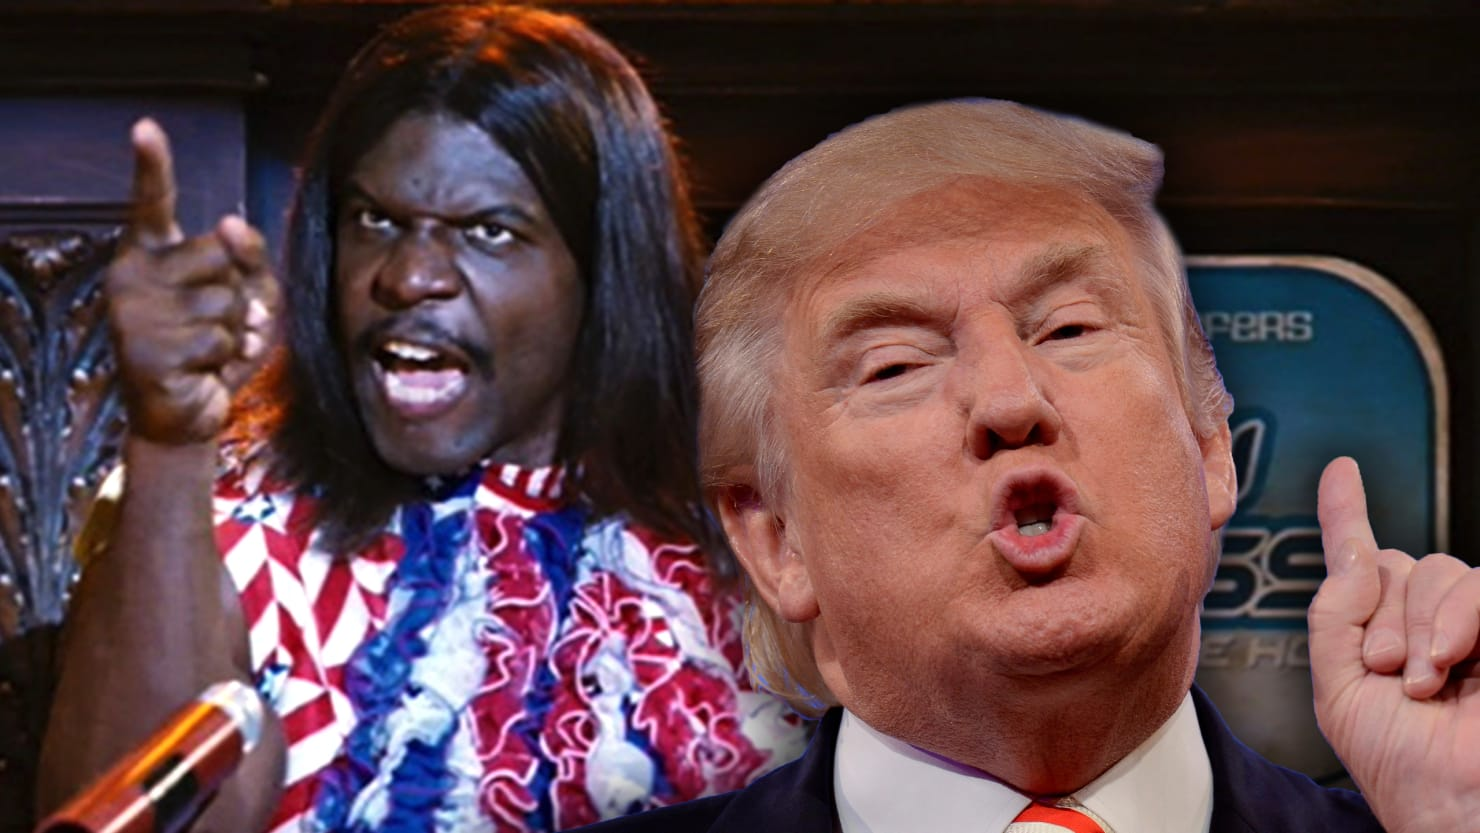 Idiocracy Characters Amazing mike judge: trump makes 'idiocracy' look 'optimistic'